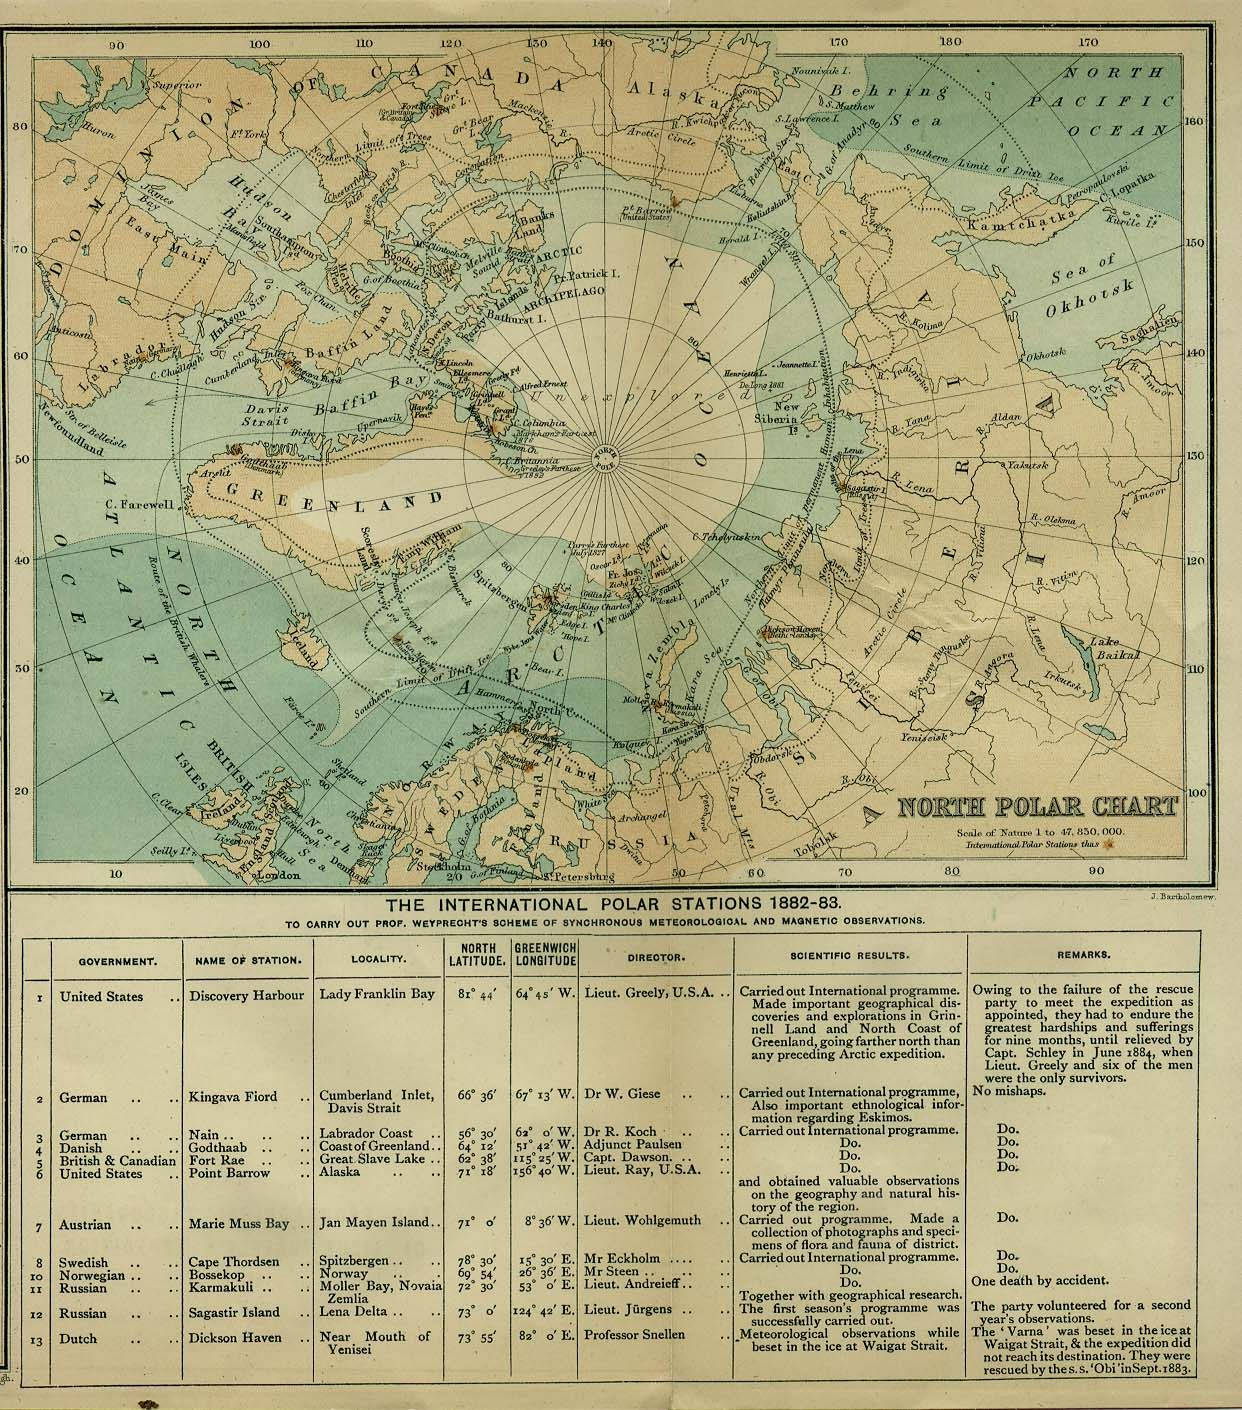 North pole map showing the international polar stations 1882 1883 north pole map showing the international polar stations 1882 1883 published by the gumiabroncs Image collections